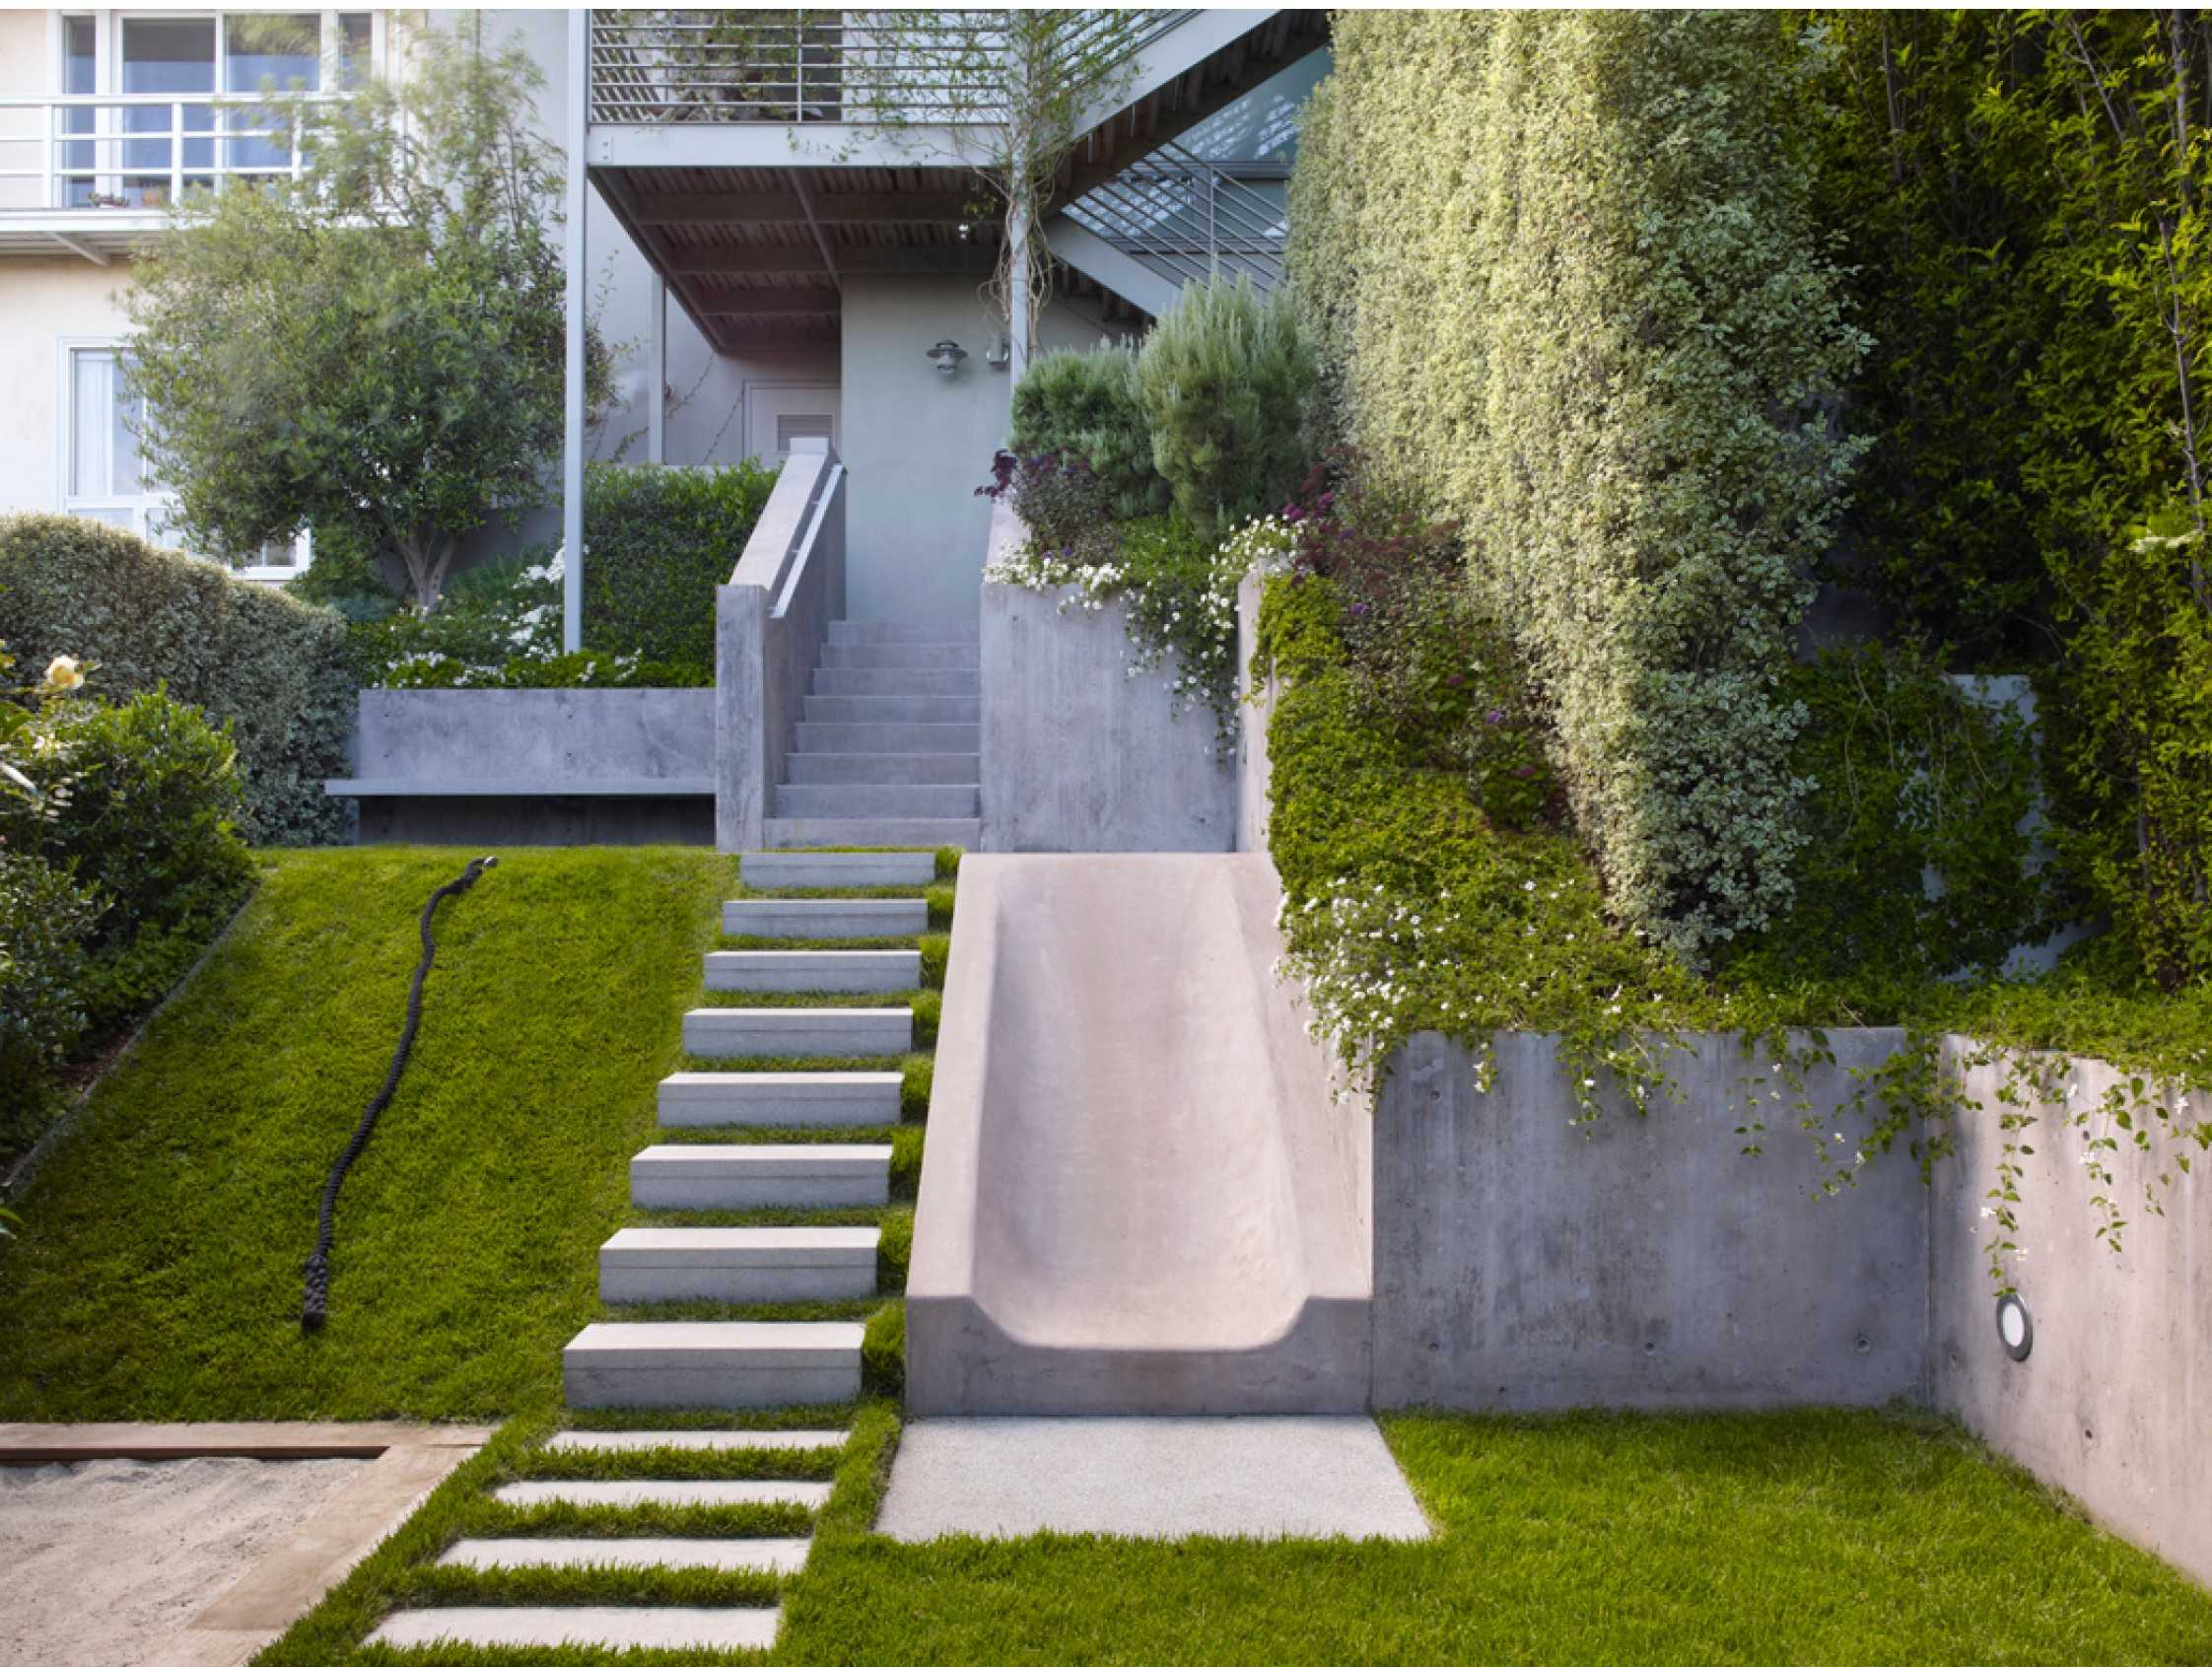 Grade Change Ideas - Steps and Concrete Slide - Landscape Step ideas